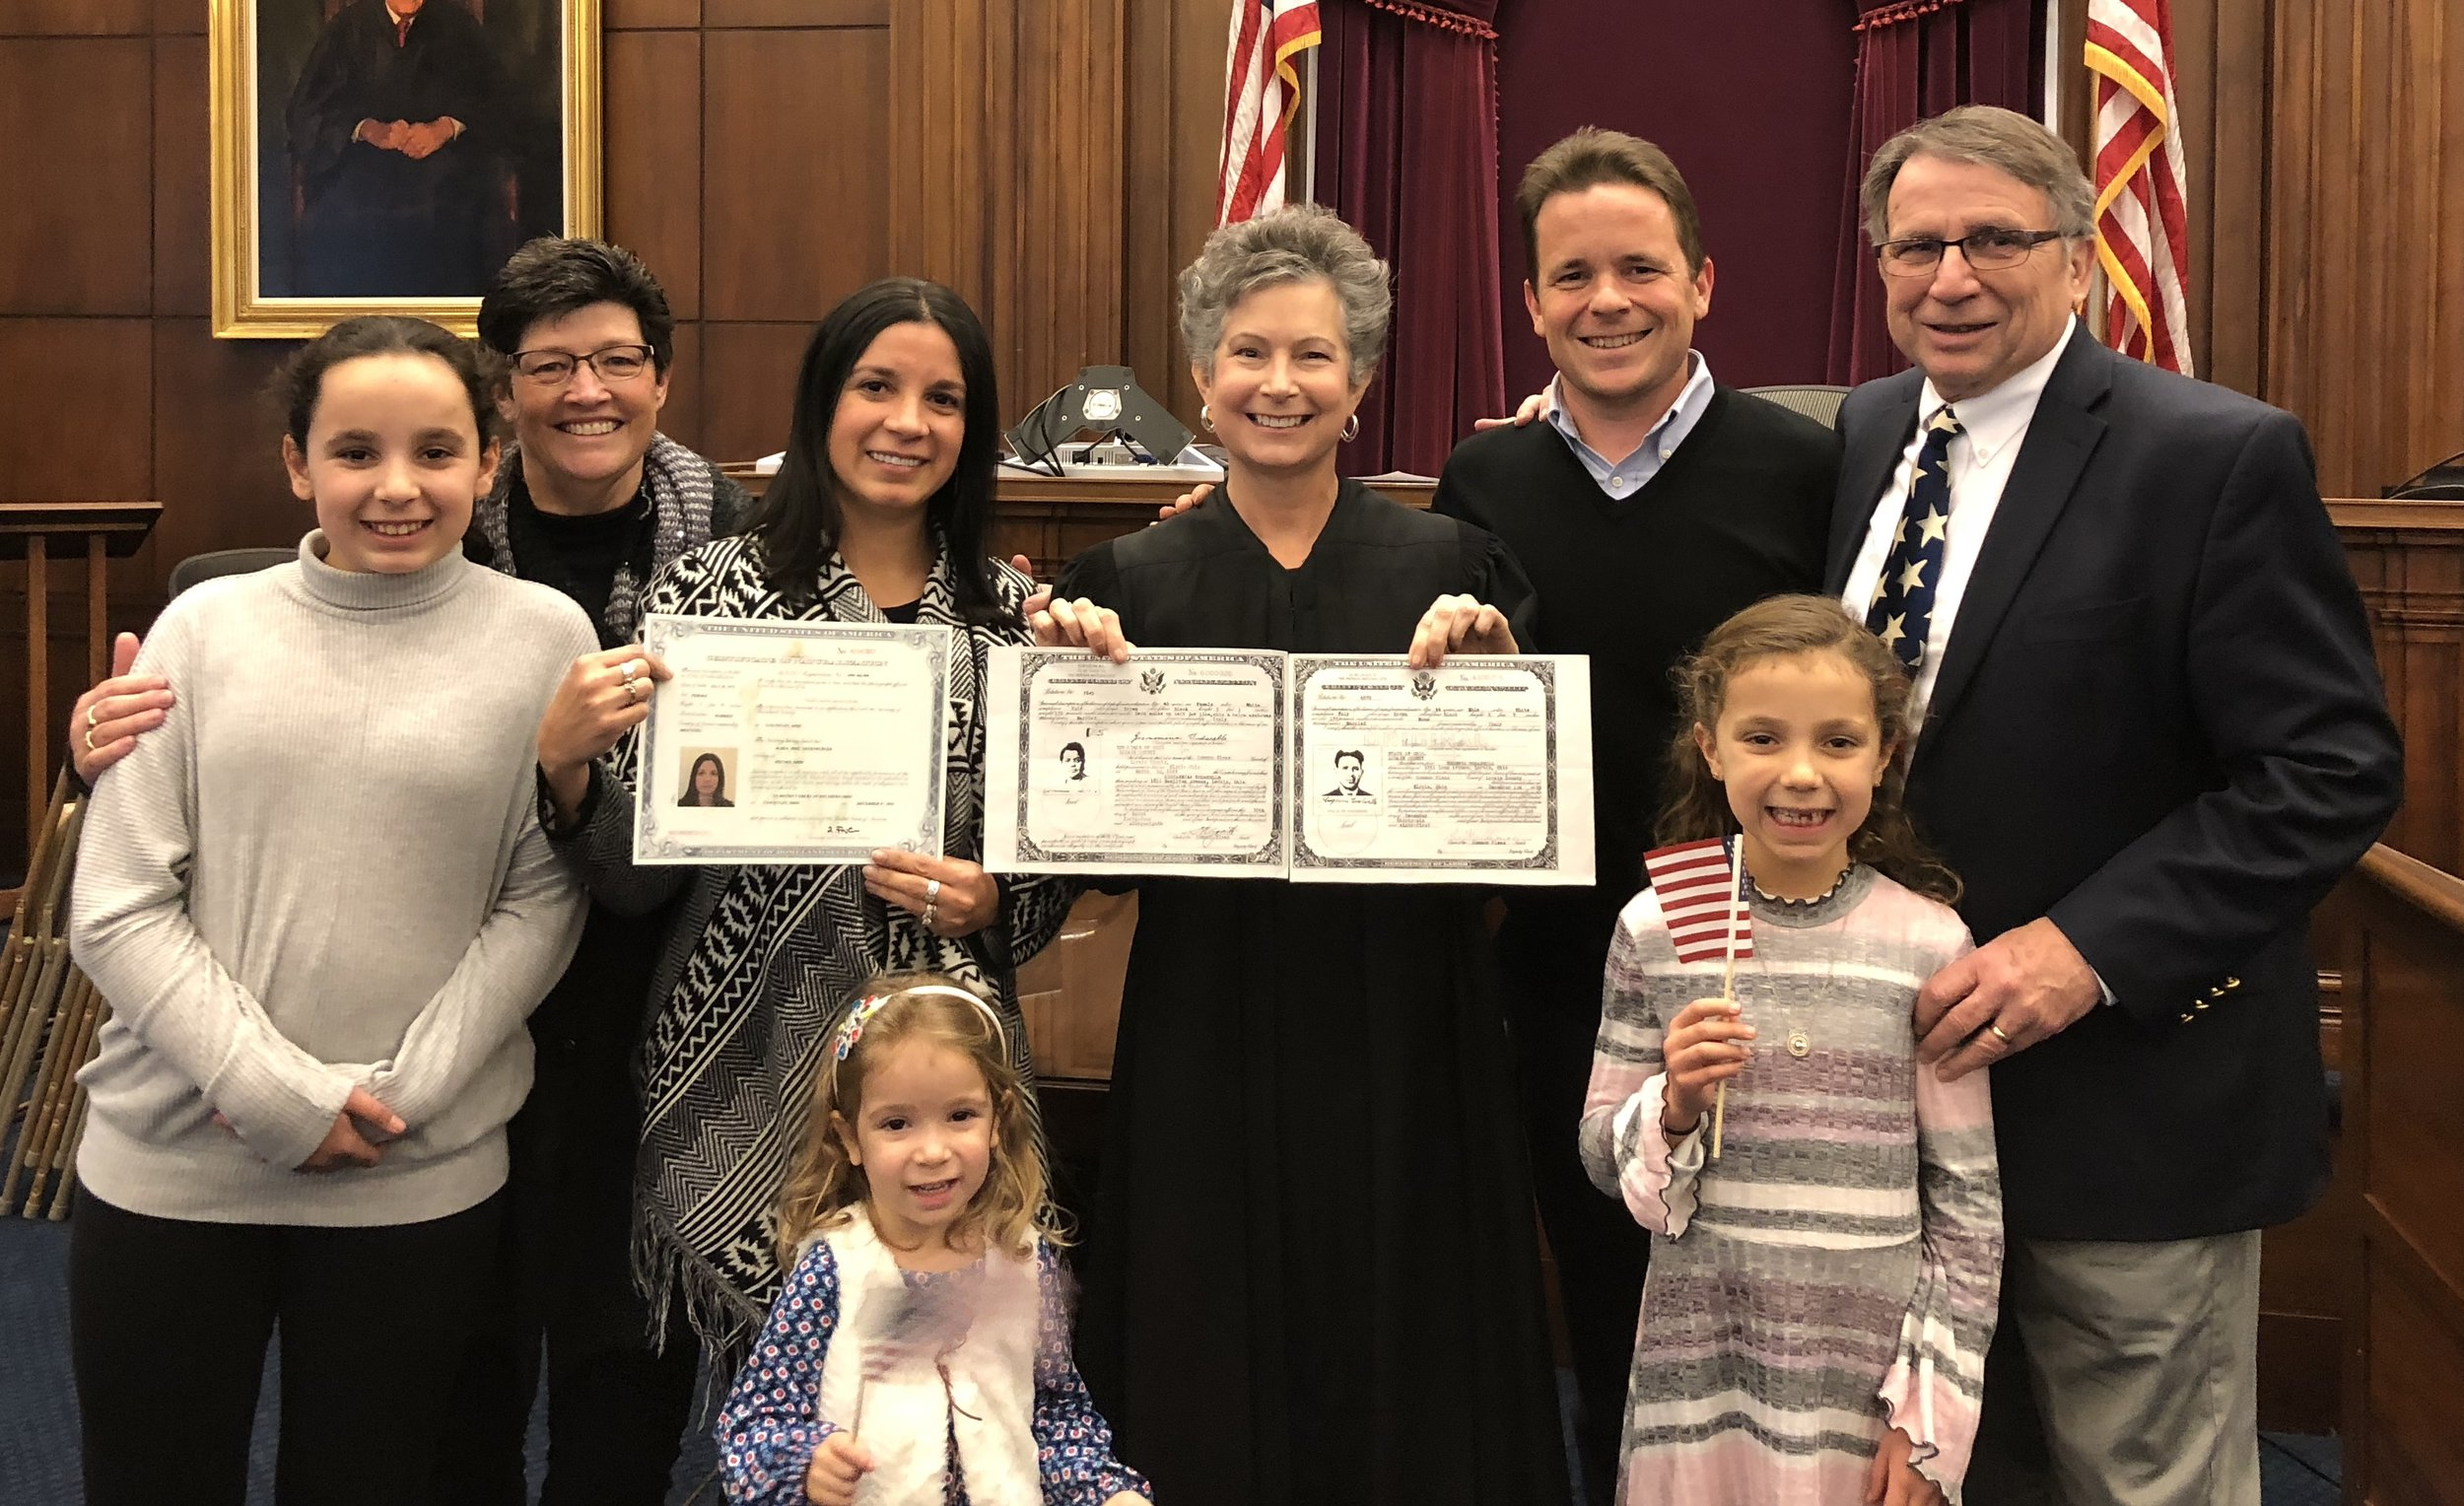 Magistrate Judge Litkovitz, next to my wife, María, and my family, shows her grandparents' Certificates of Naturalization from the 1930s and 1940s.